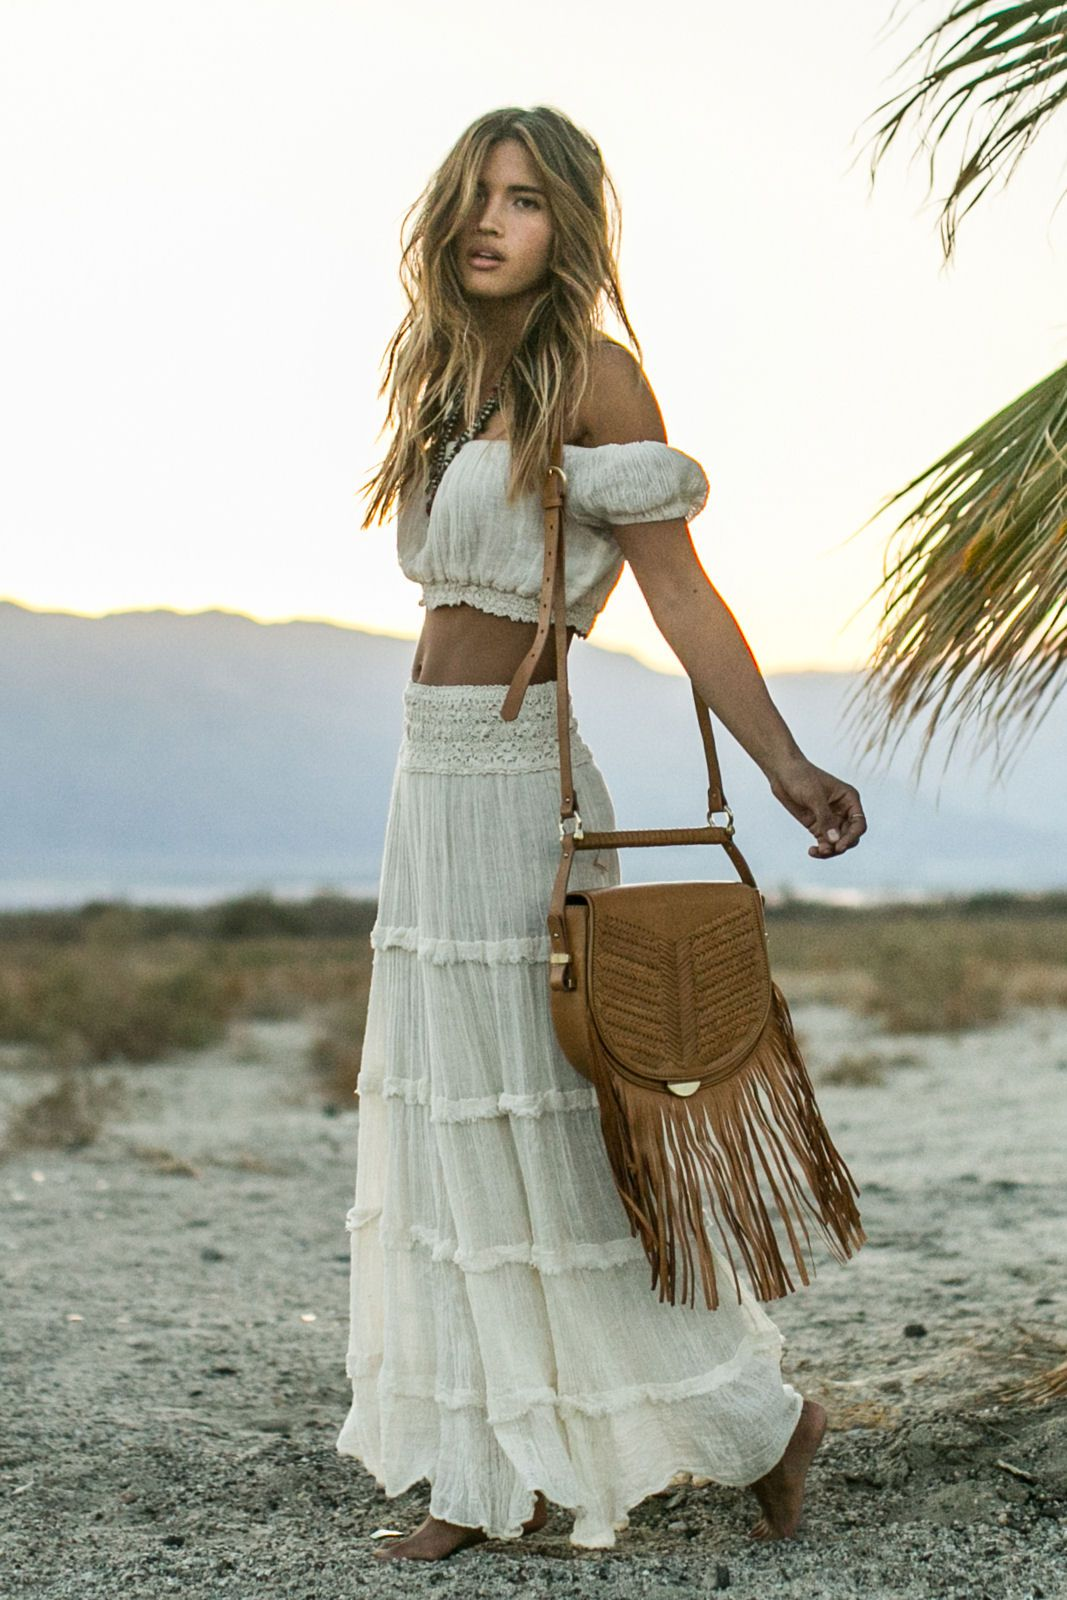 Buy Hippy Boho chic complements picture trends